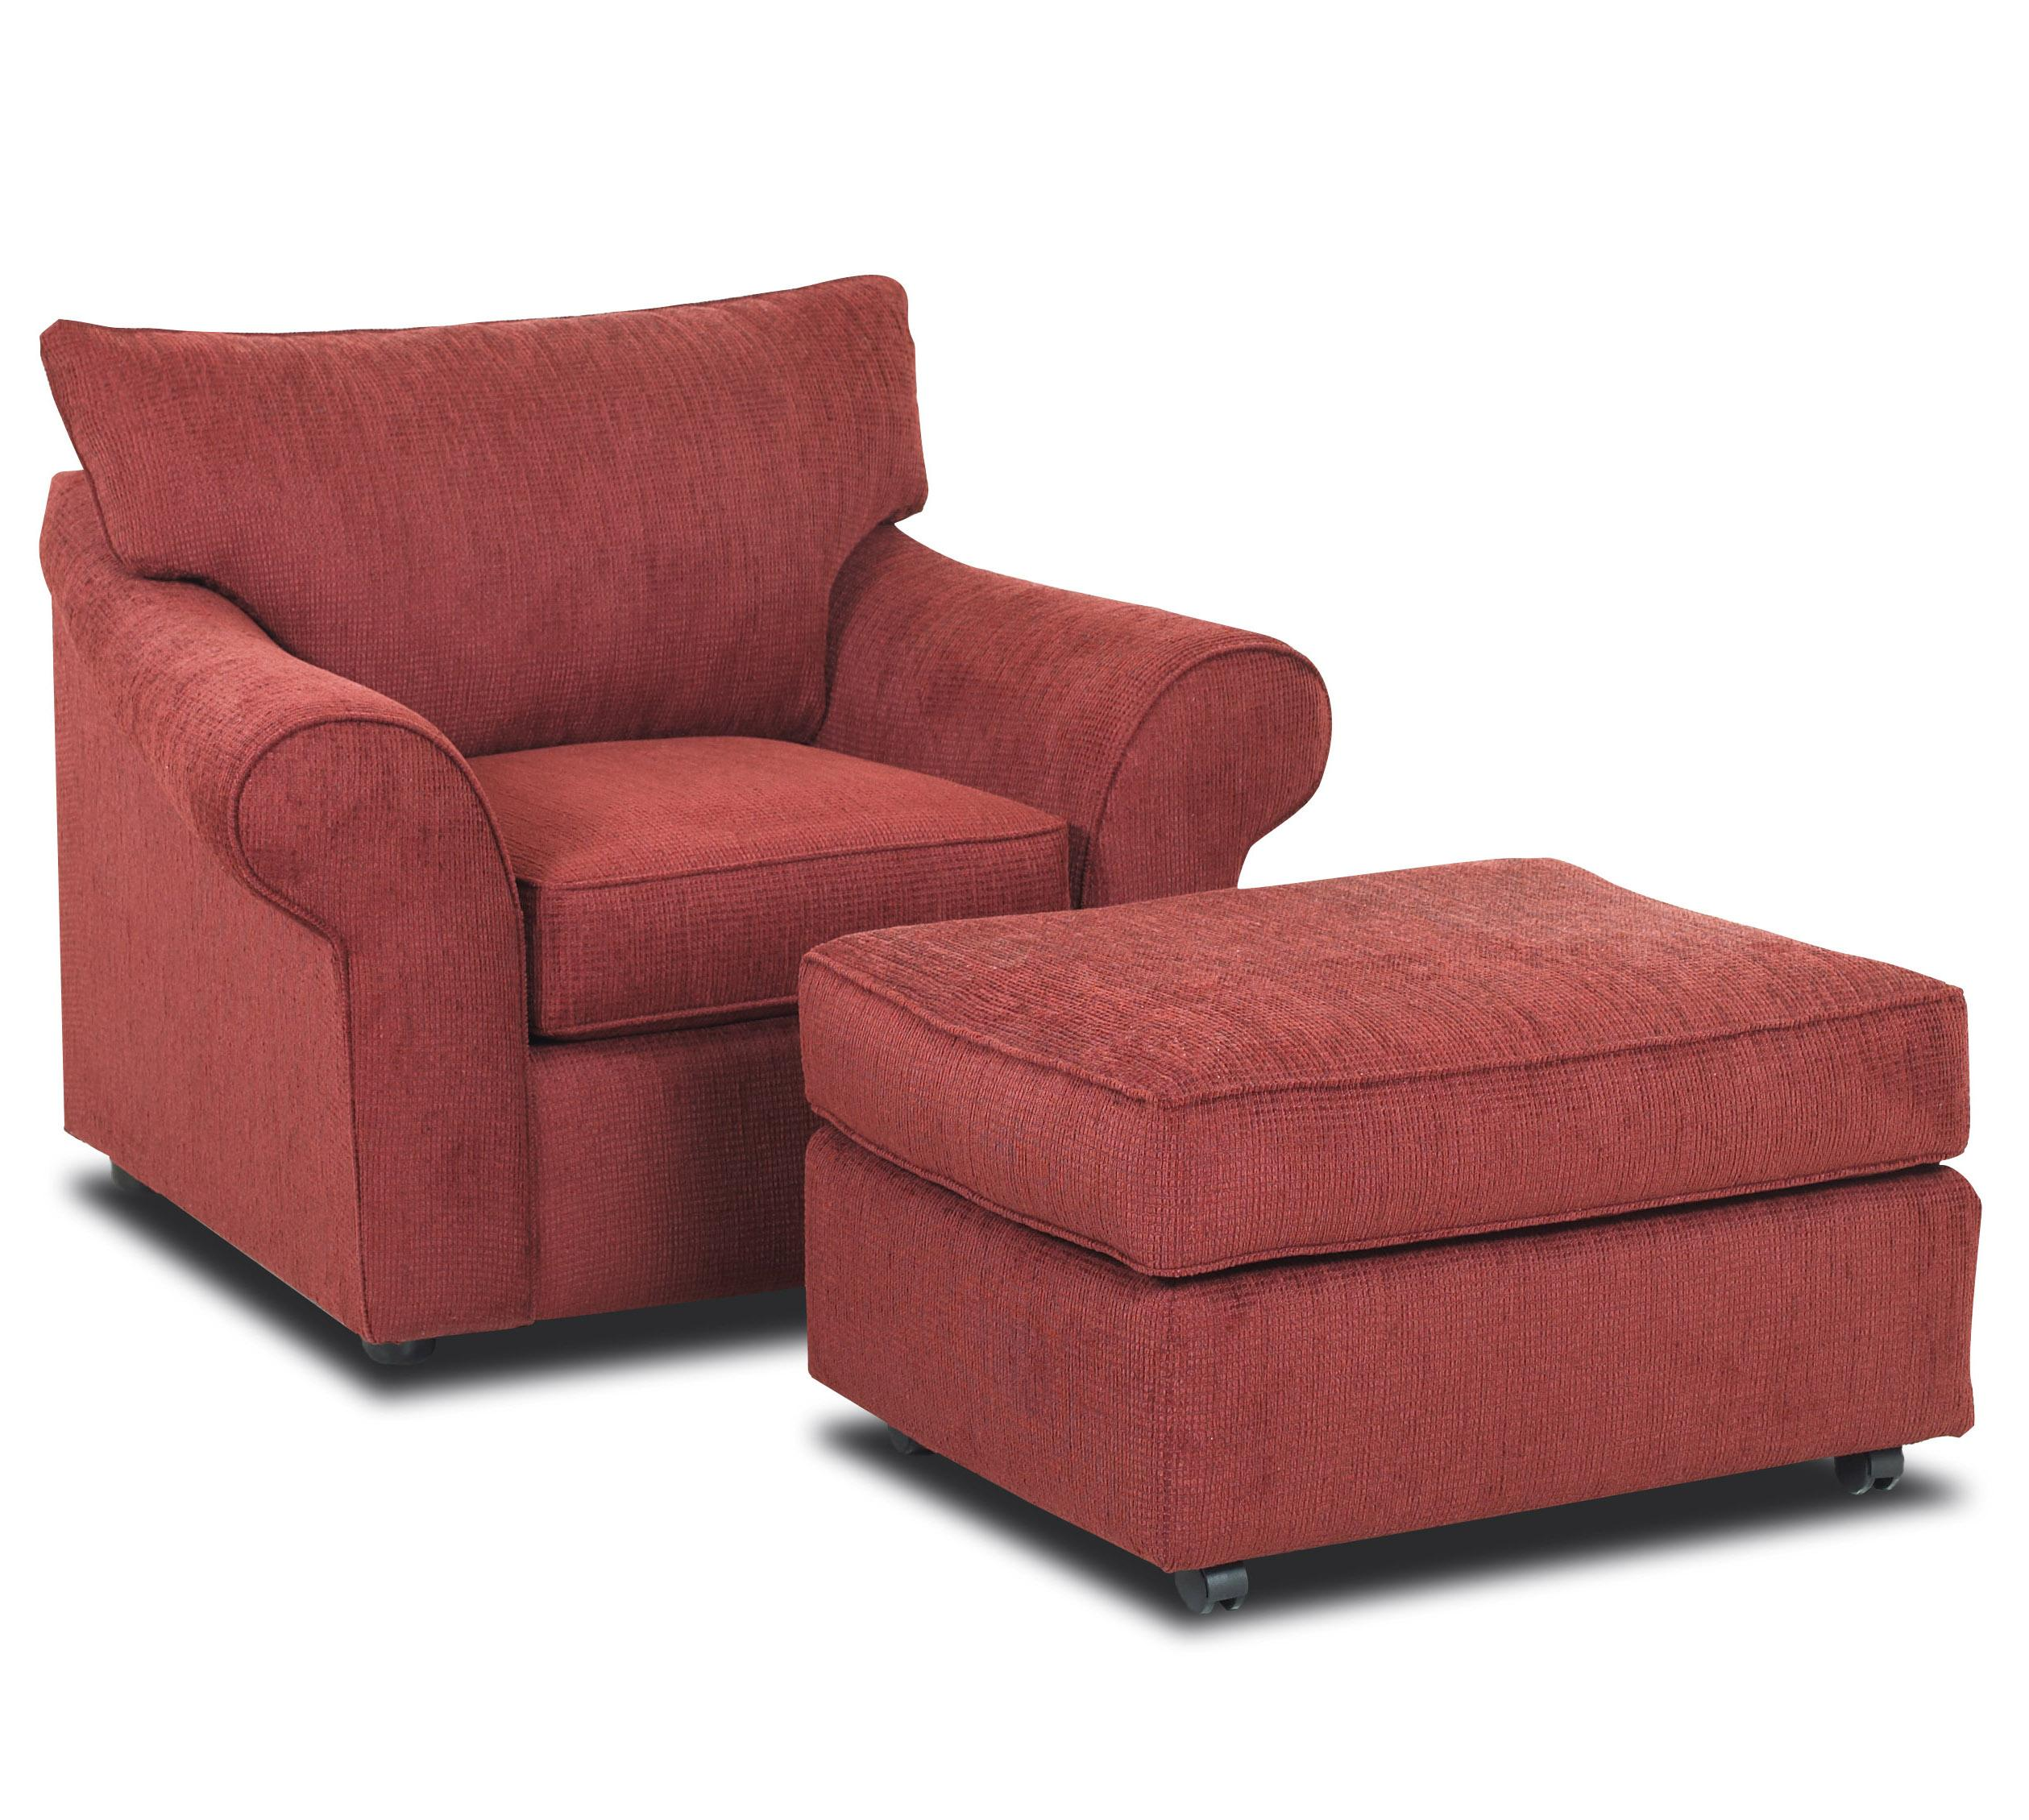 Chair And Wheeled Ottoman Set